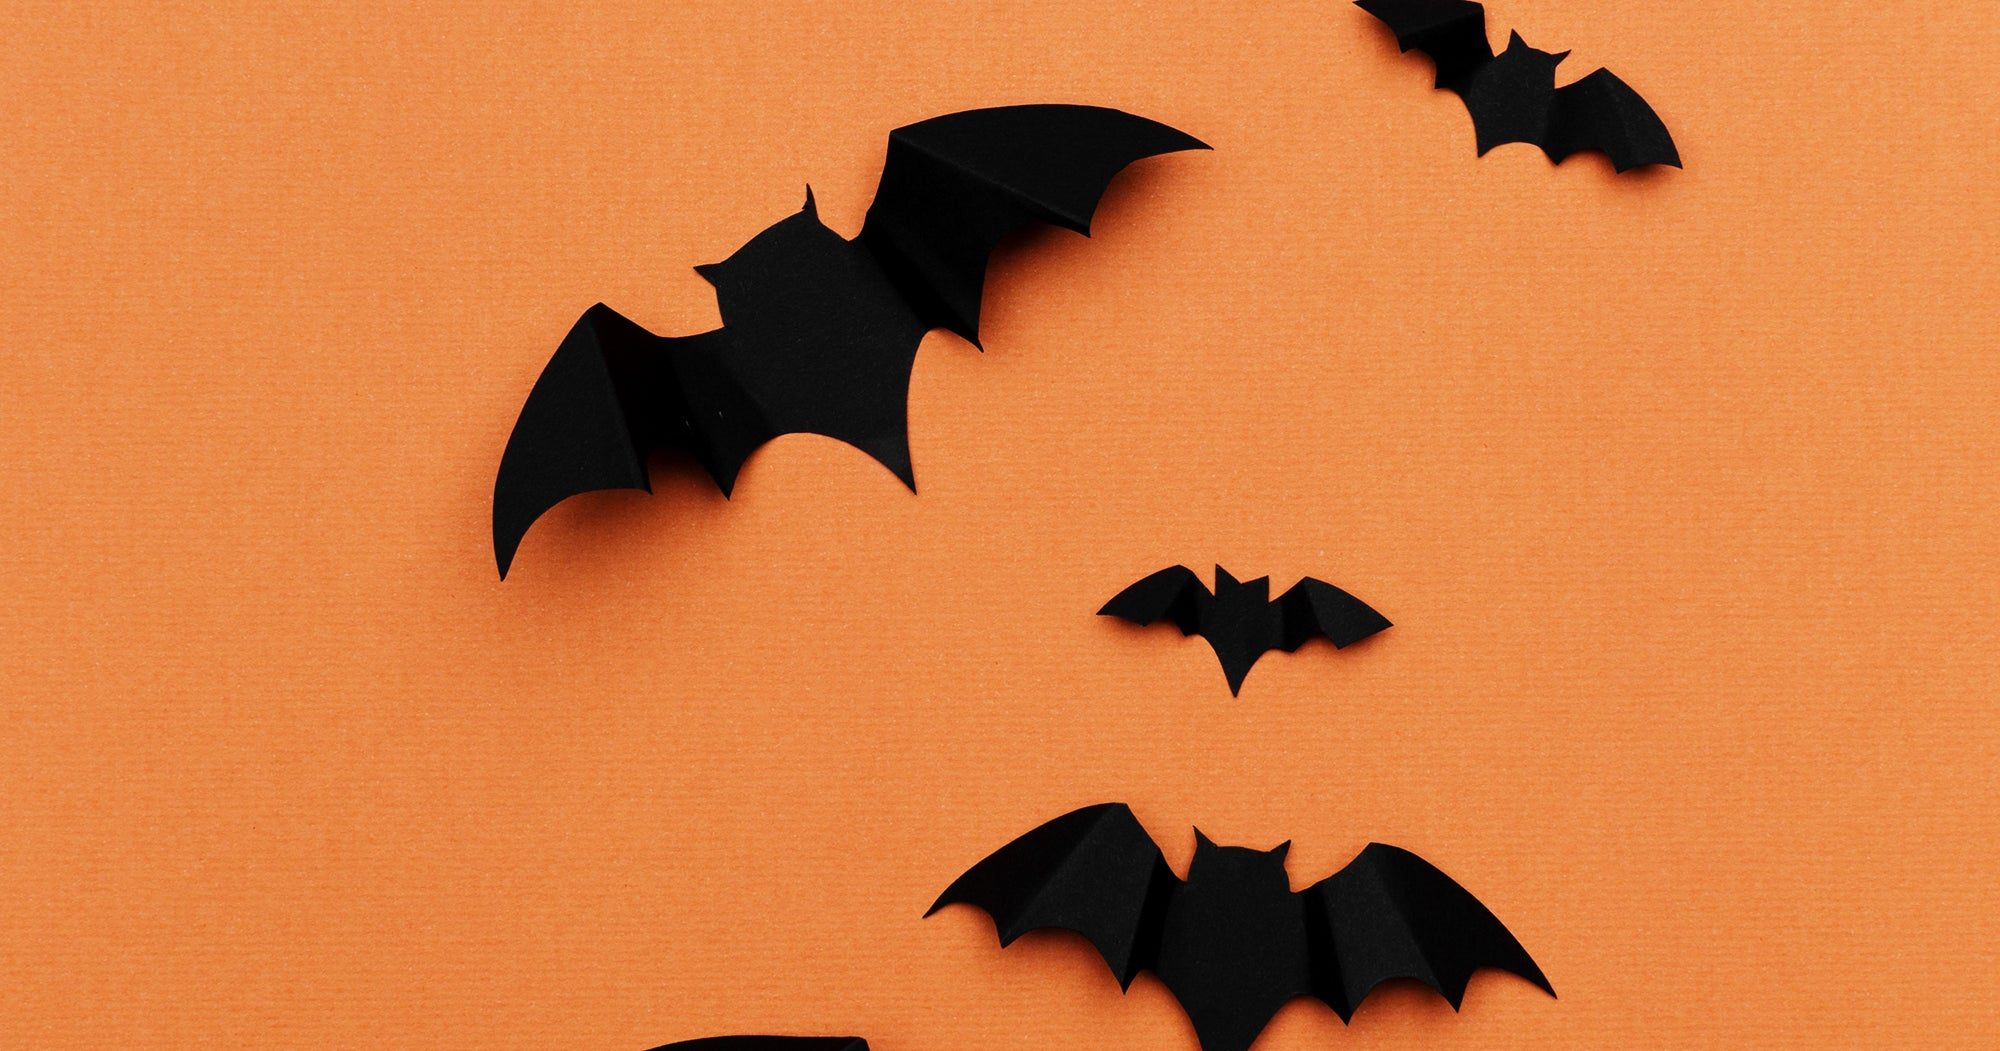 What Do Bats Have To Do With Halloween, Anyway?